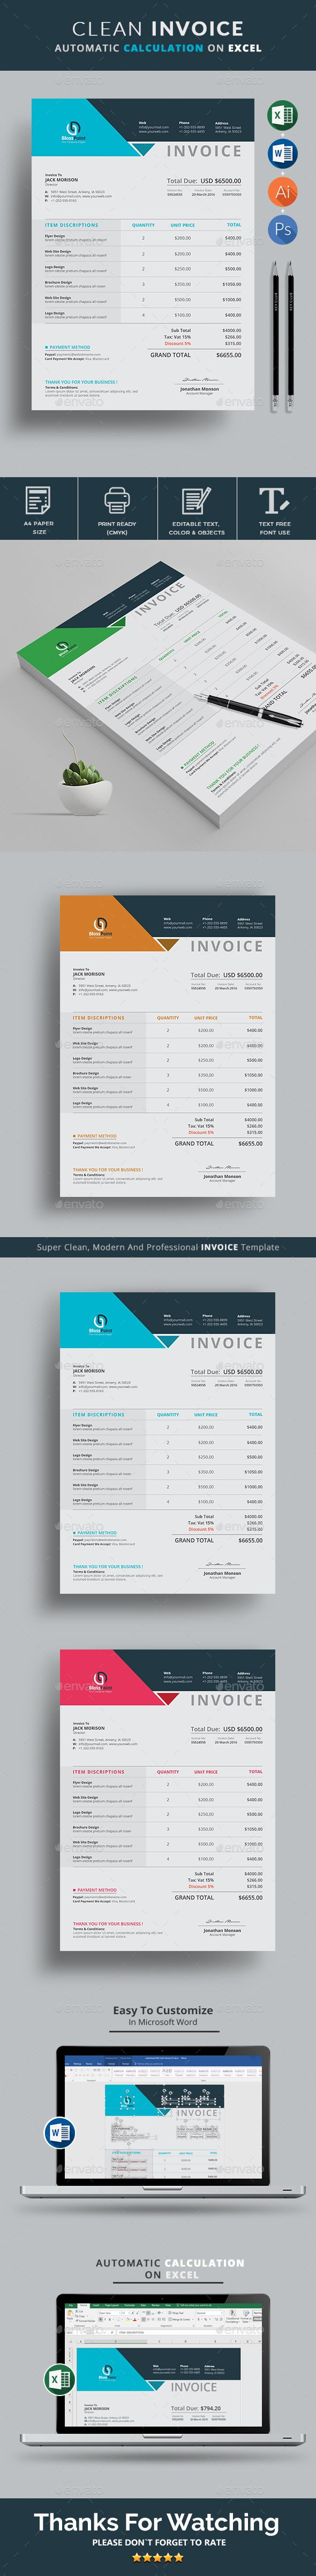 #Invoice #Template Use this Clean Invoice for personal, corporate or company billing purpose. Excel Auto Calculation features are available. This Simple Invoice will help you to create your invoice very quick and easy. This Elegant Invoice Design will convey your brand identity as well as Professional Invoice look. Download here: https://graphicriver.net/item/invoice/19853661?ref=classicdesignp